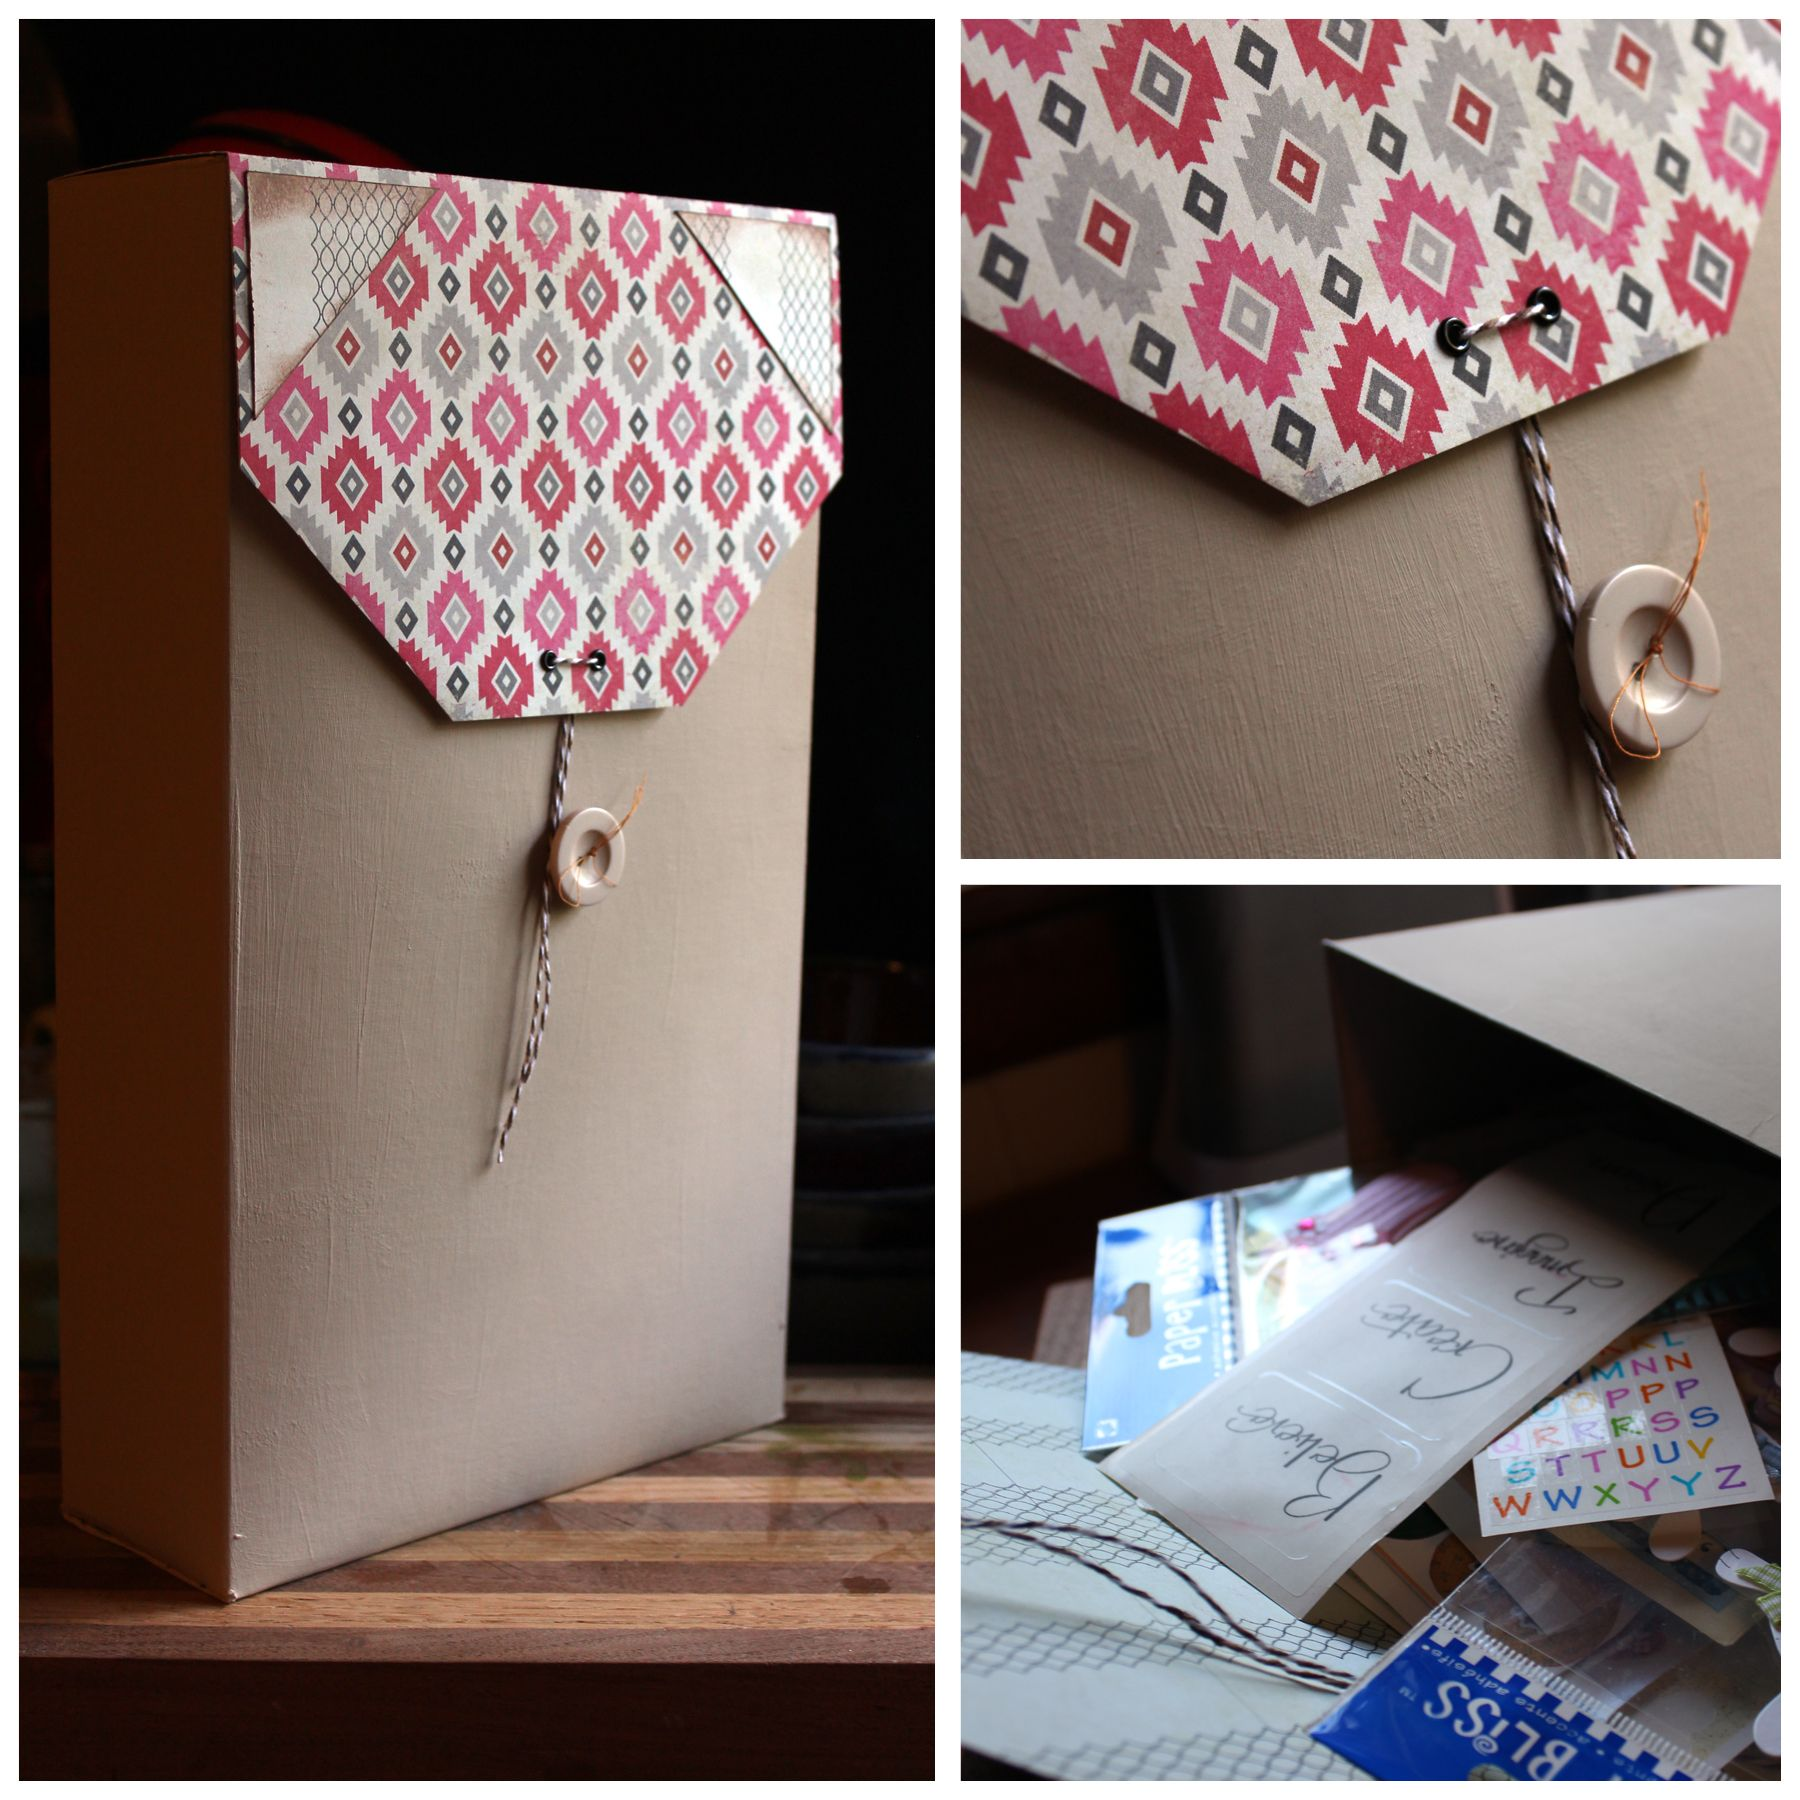 Decorative Shoe Boxes Storage Diy Cute Storage Box From Cereal Box  Diy  Pinterest  Storage